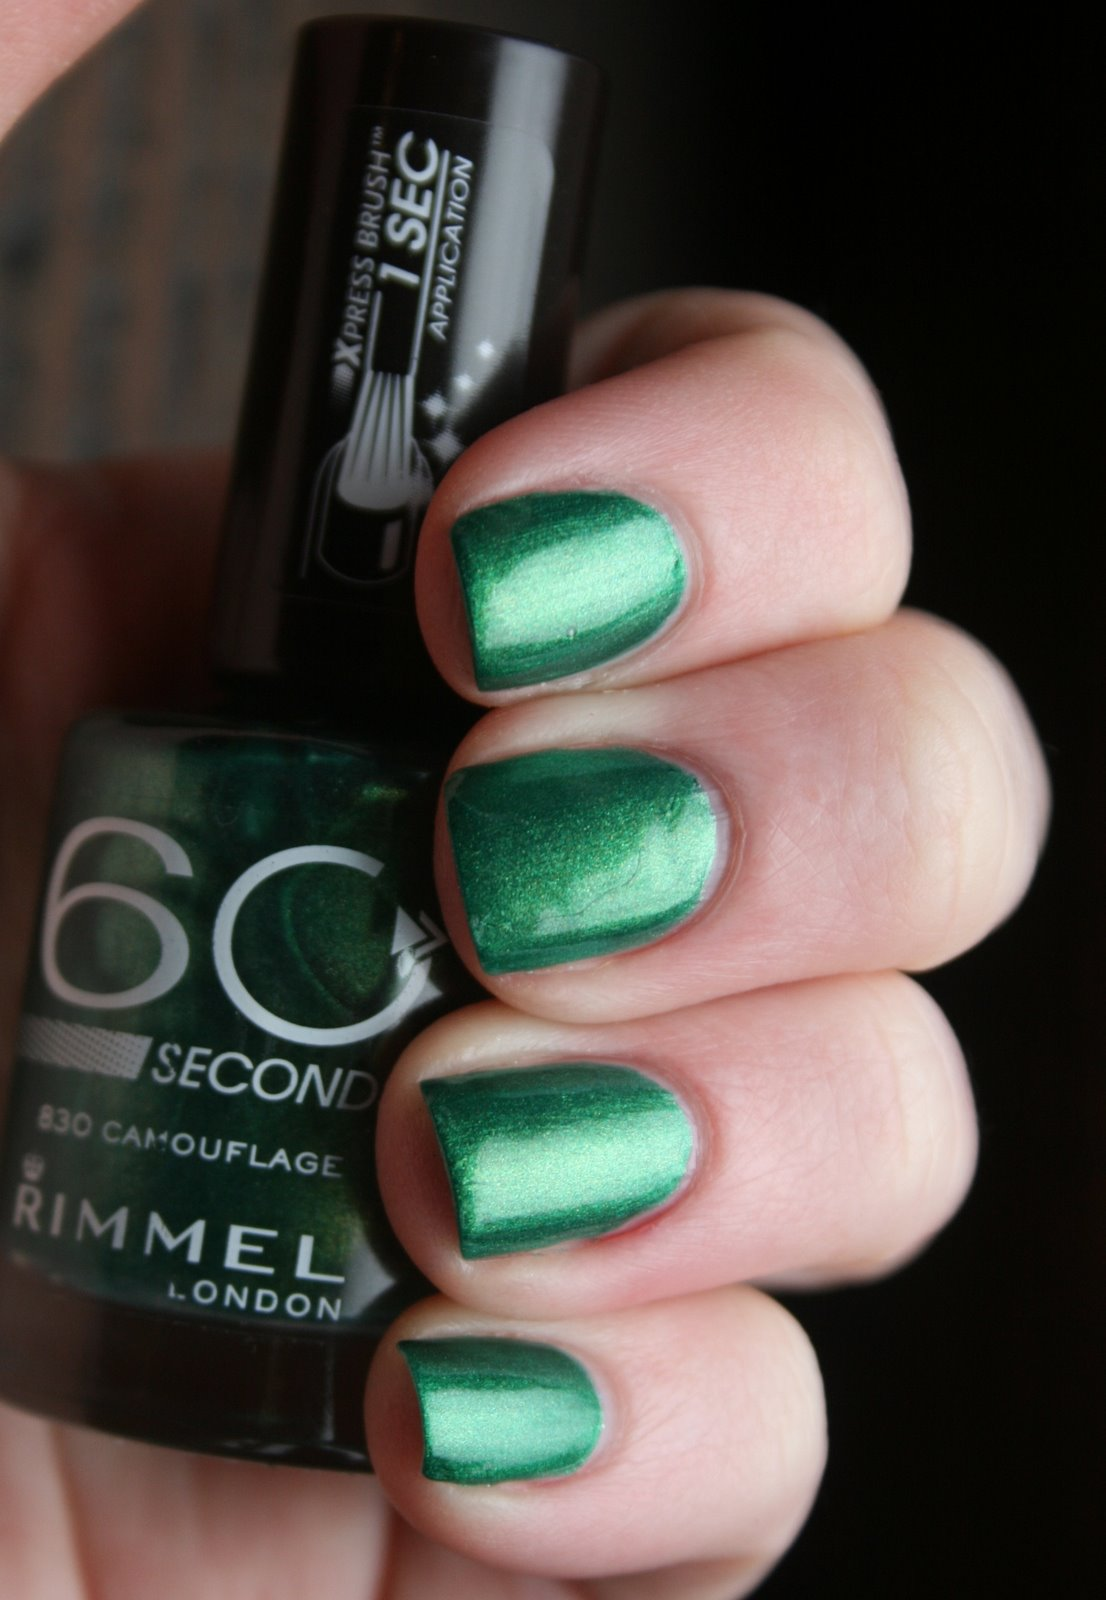 Rimmel Camouflage swatch